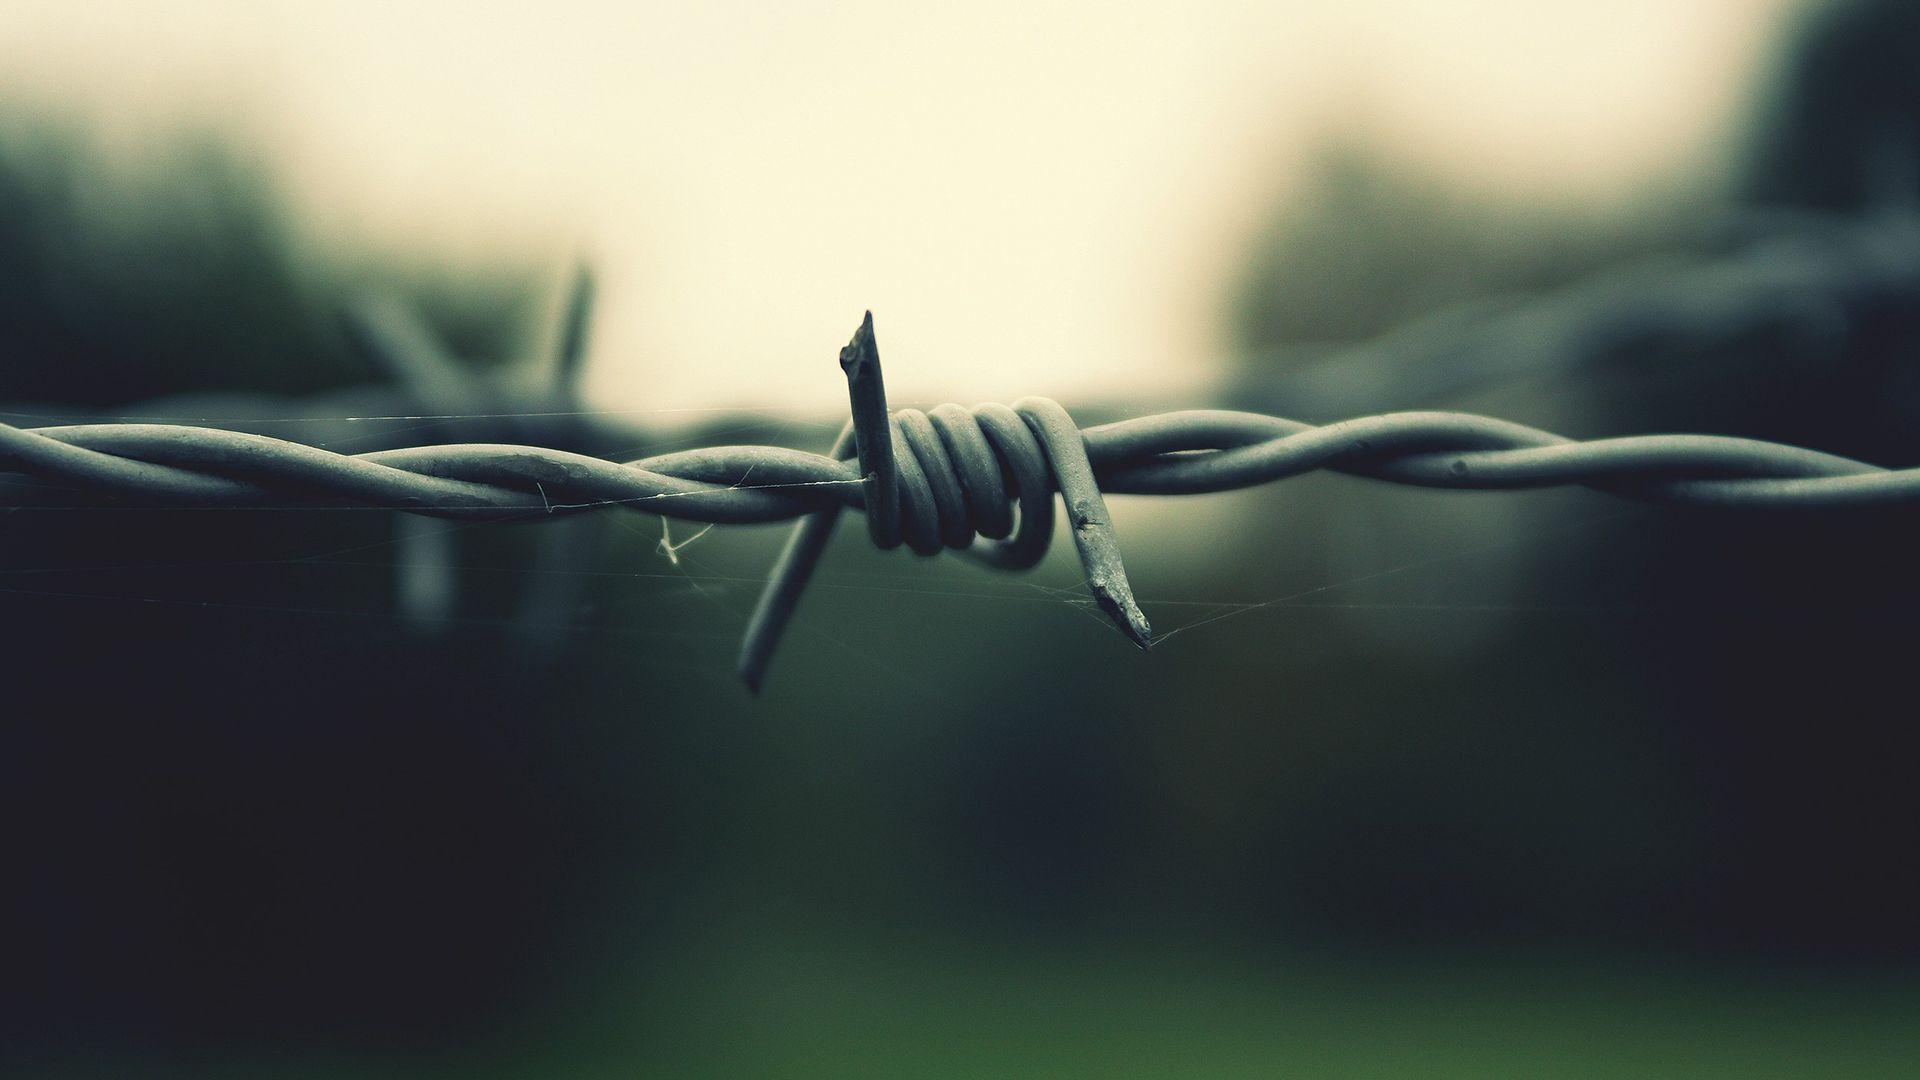 Barbed Wire Wallpaper Amazing Decoration 615716 Decorating Ideas